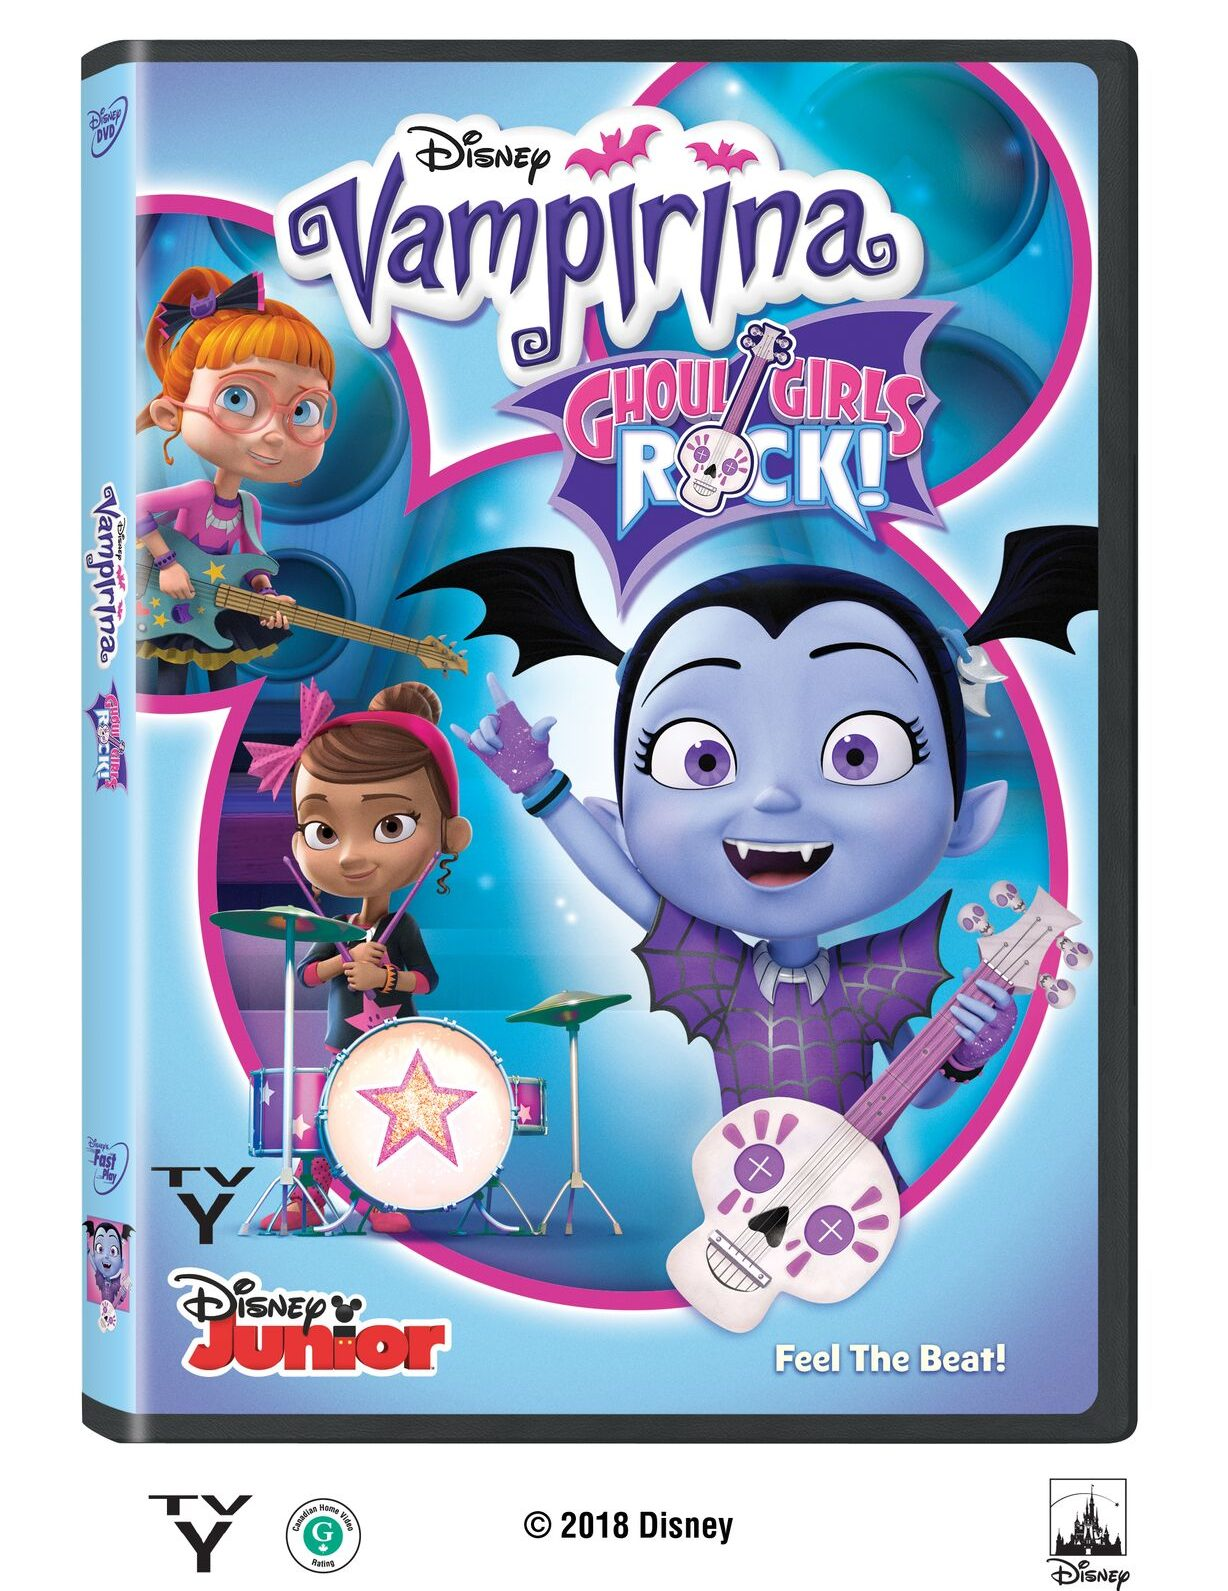 Vampirina: Ghoul Girls Rock DVD #Vampirina #DVD #movies #ad